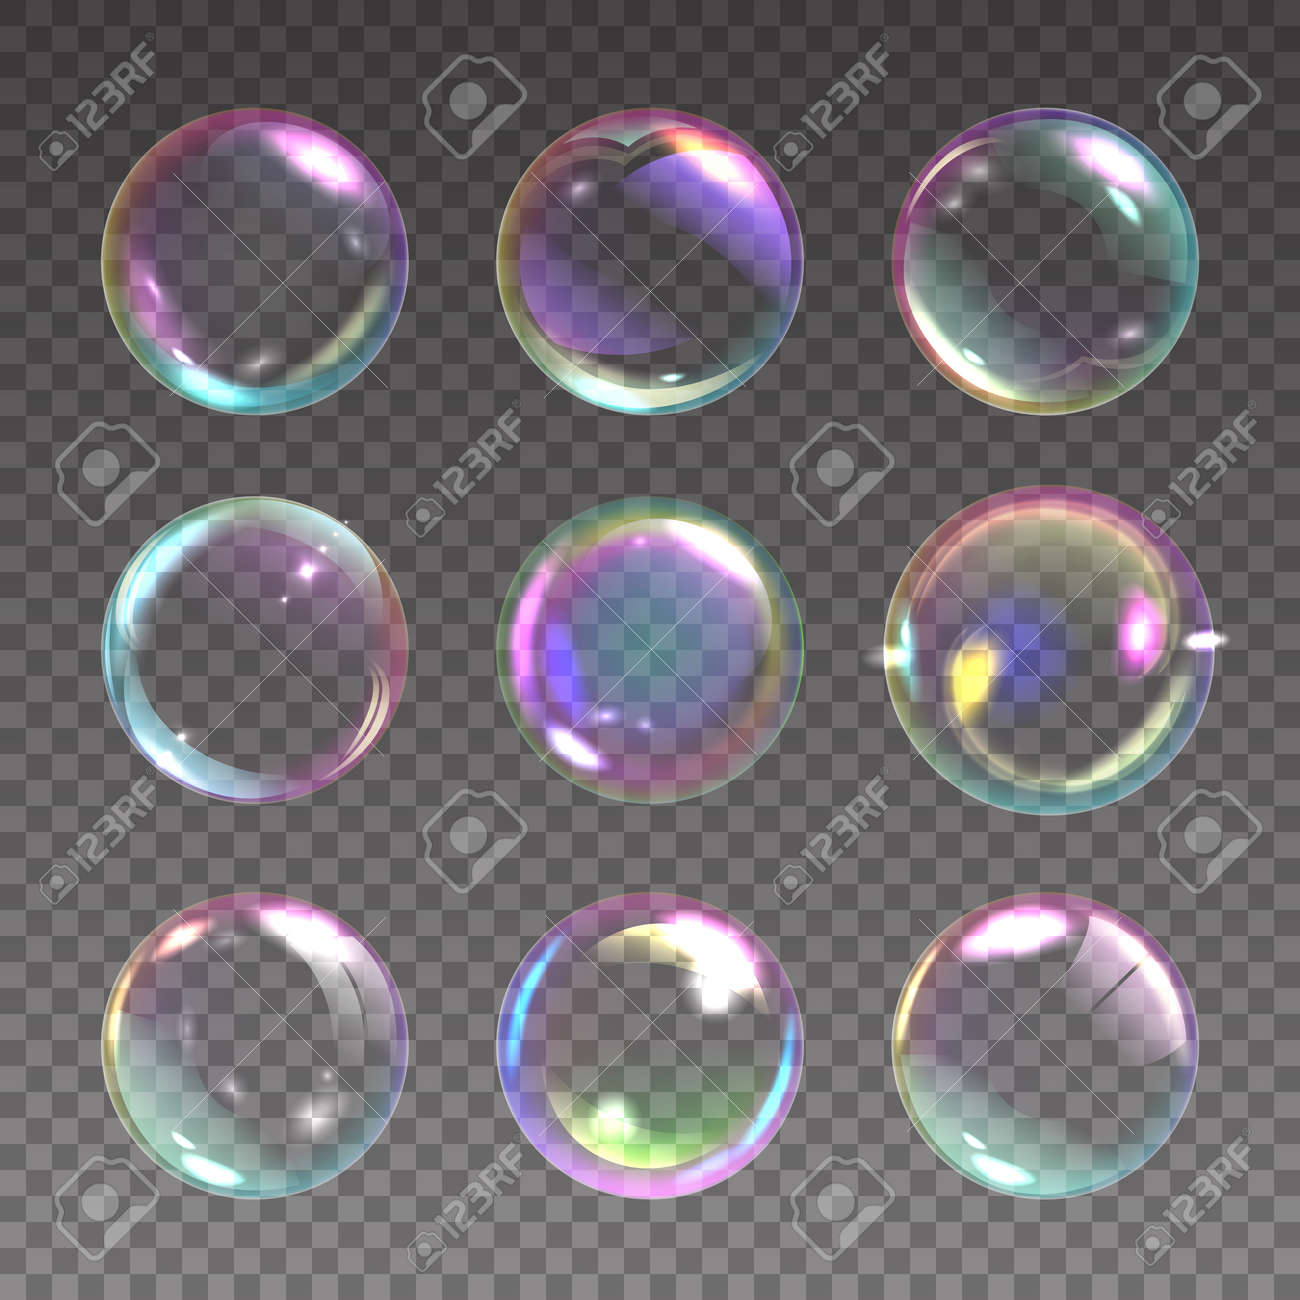 Realistic soap bubble. Detergent foam rainbow colored ball, laundry and shower color iridescent clear shampoo bubbles. Shiny washing circles. Vector isolated on transparent background set - 173354939